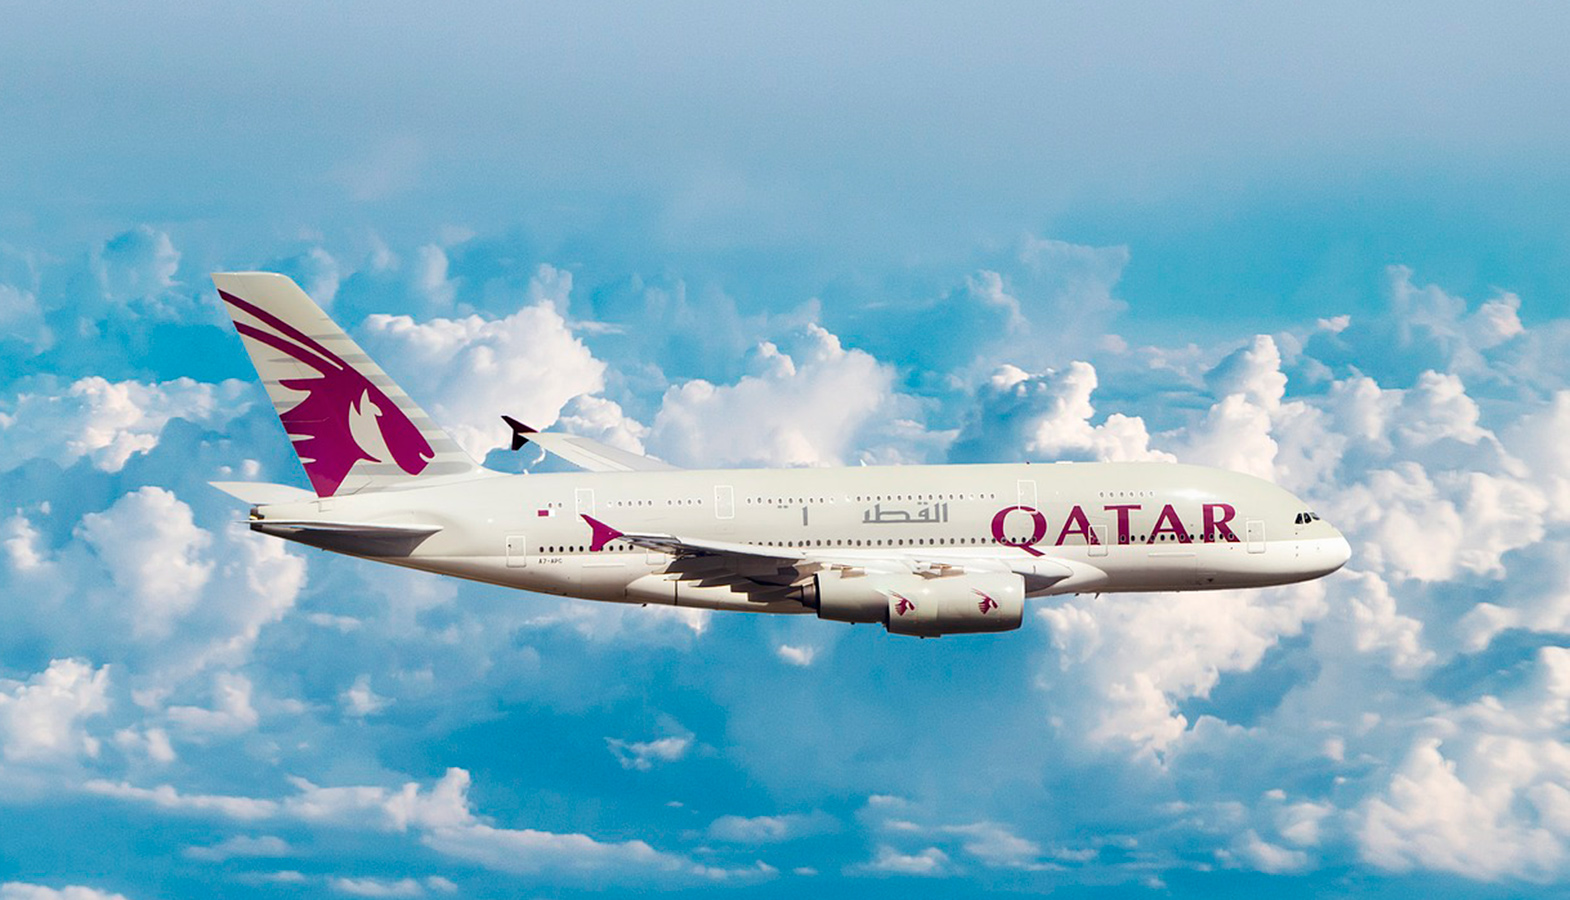 Qatar Airways Demands $5 Billion In Compensation From Four Arab Countries For The Blockade